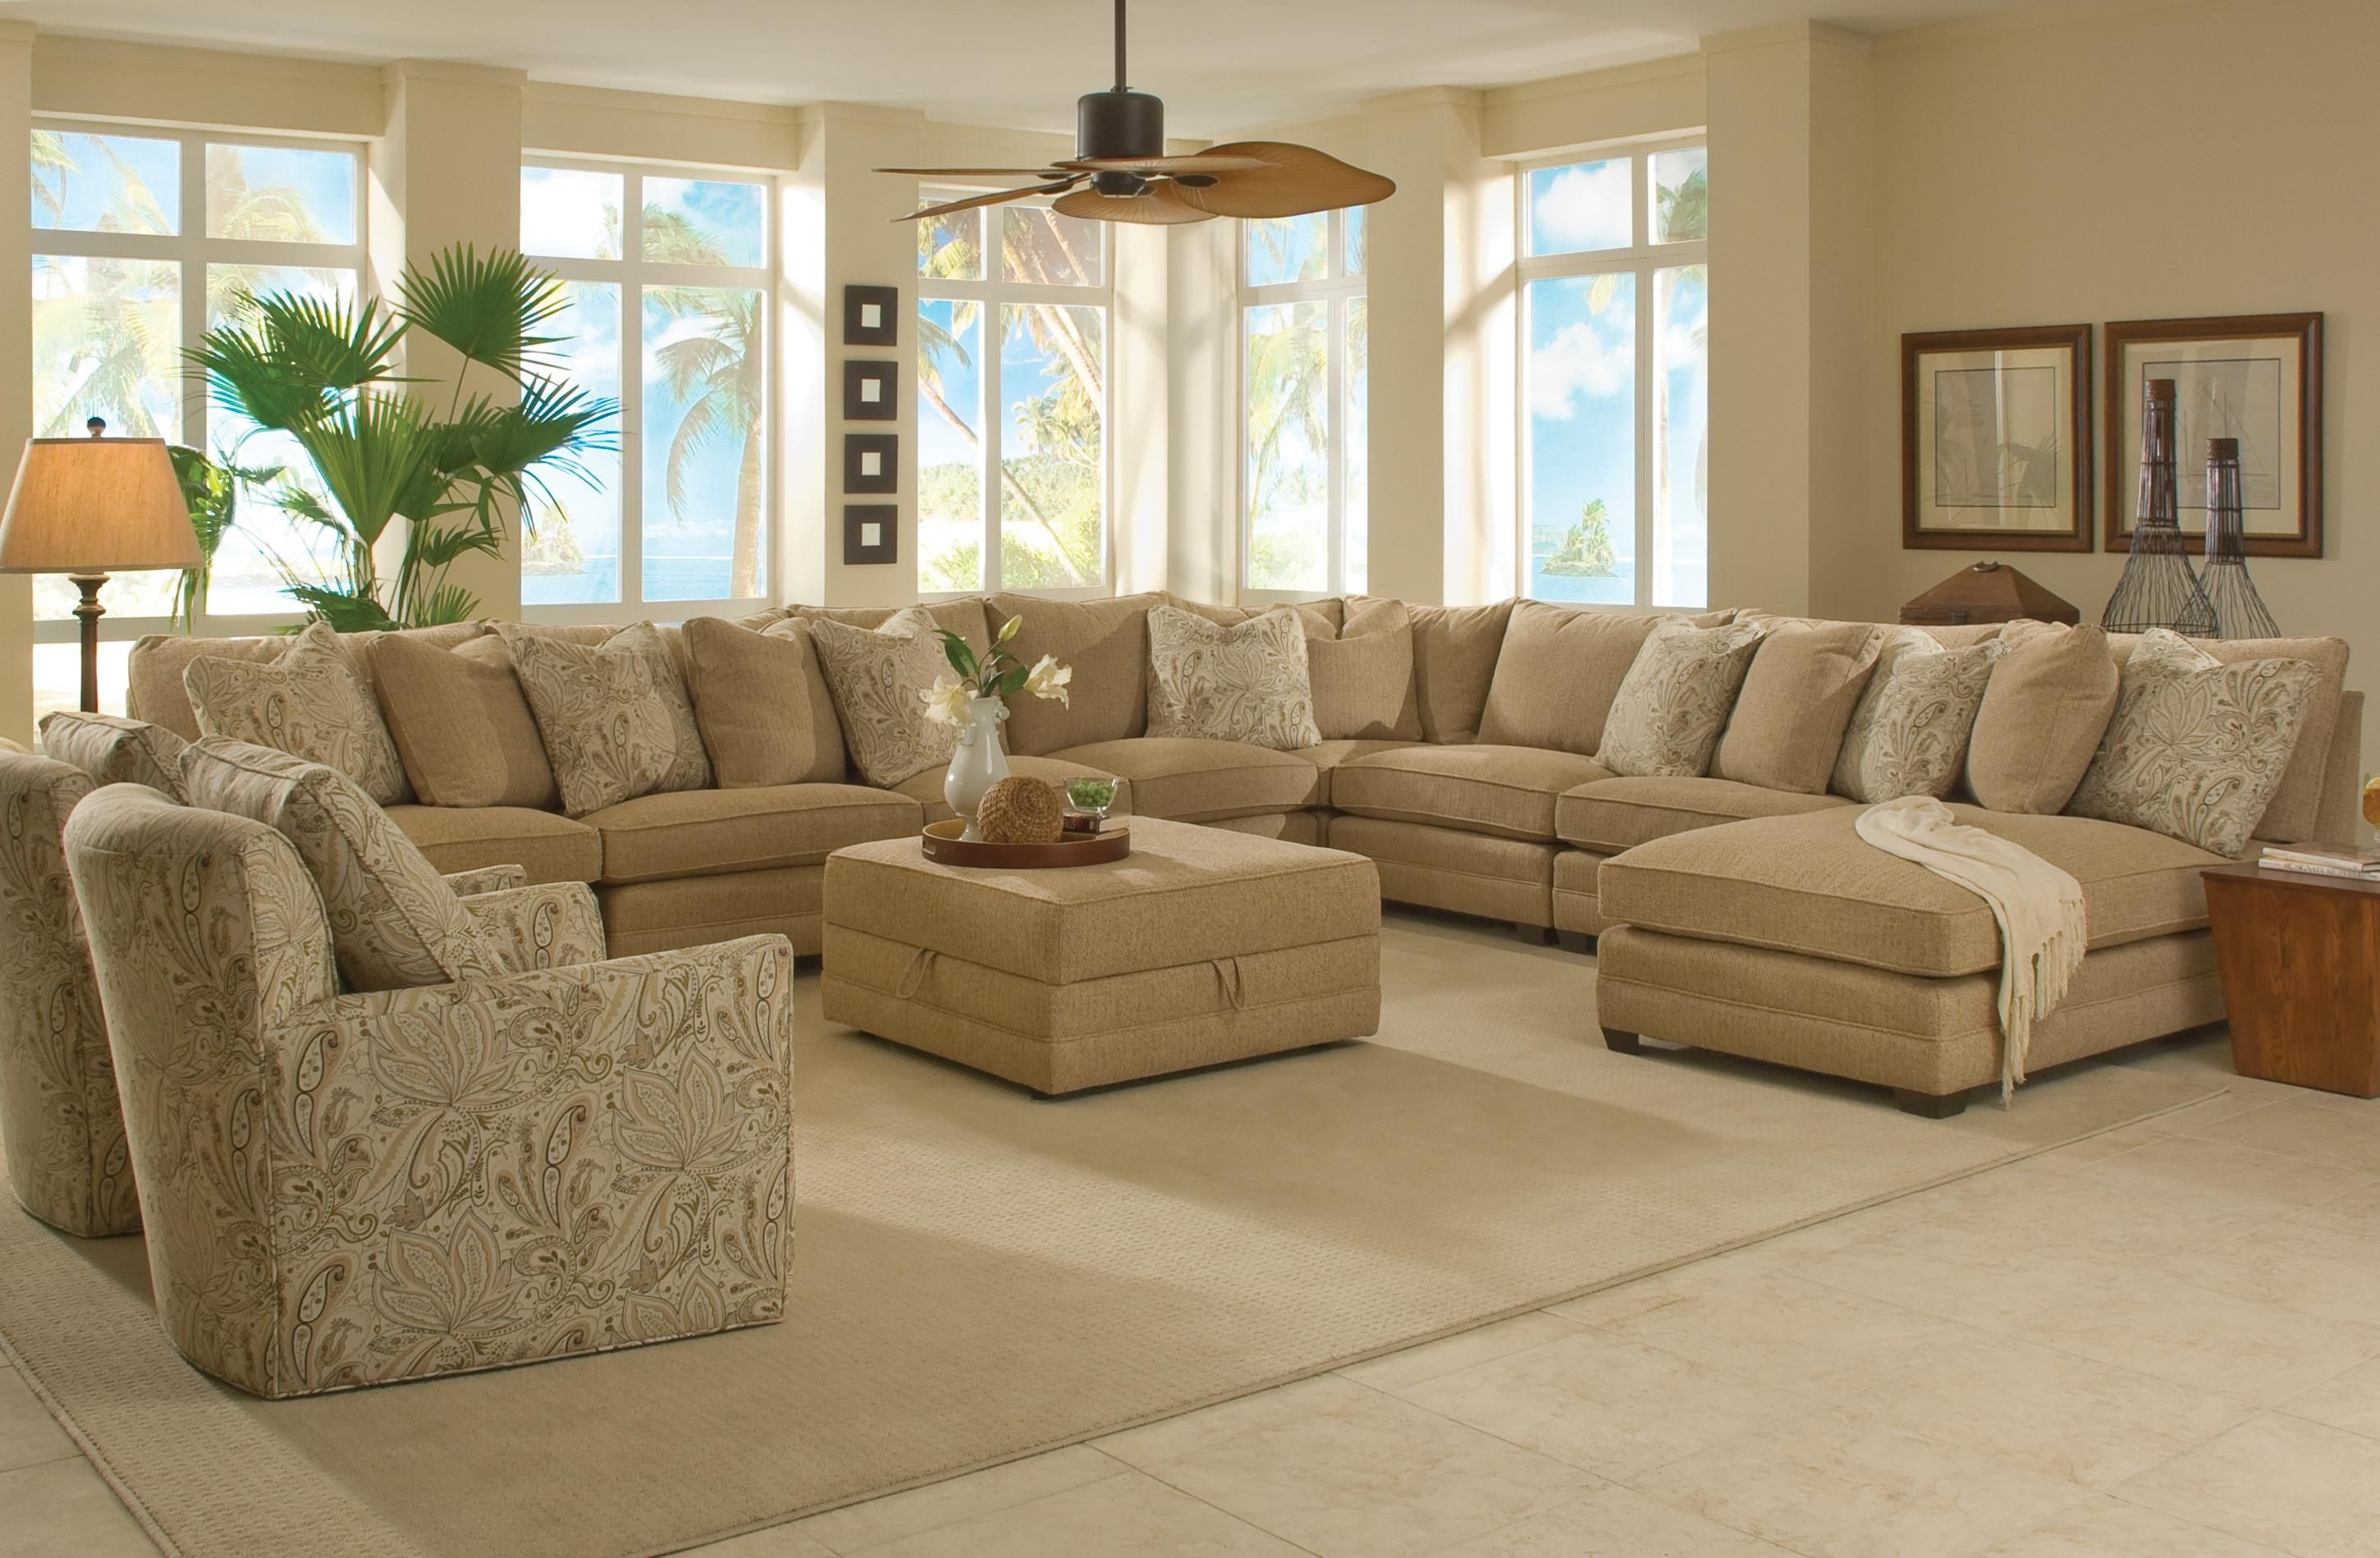 Extra Wide Sectional Couches Large Sectional Sofa Sectional